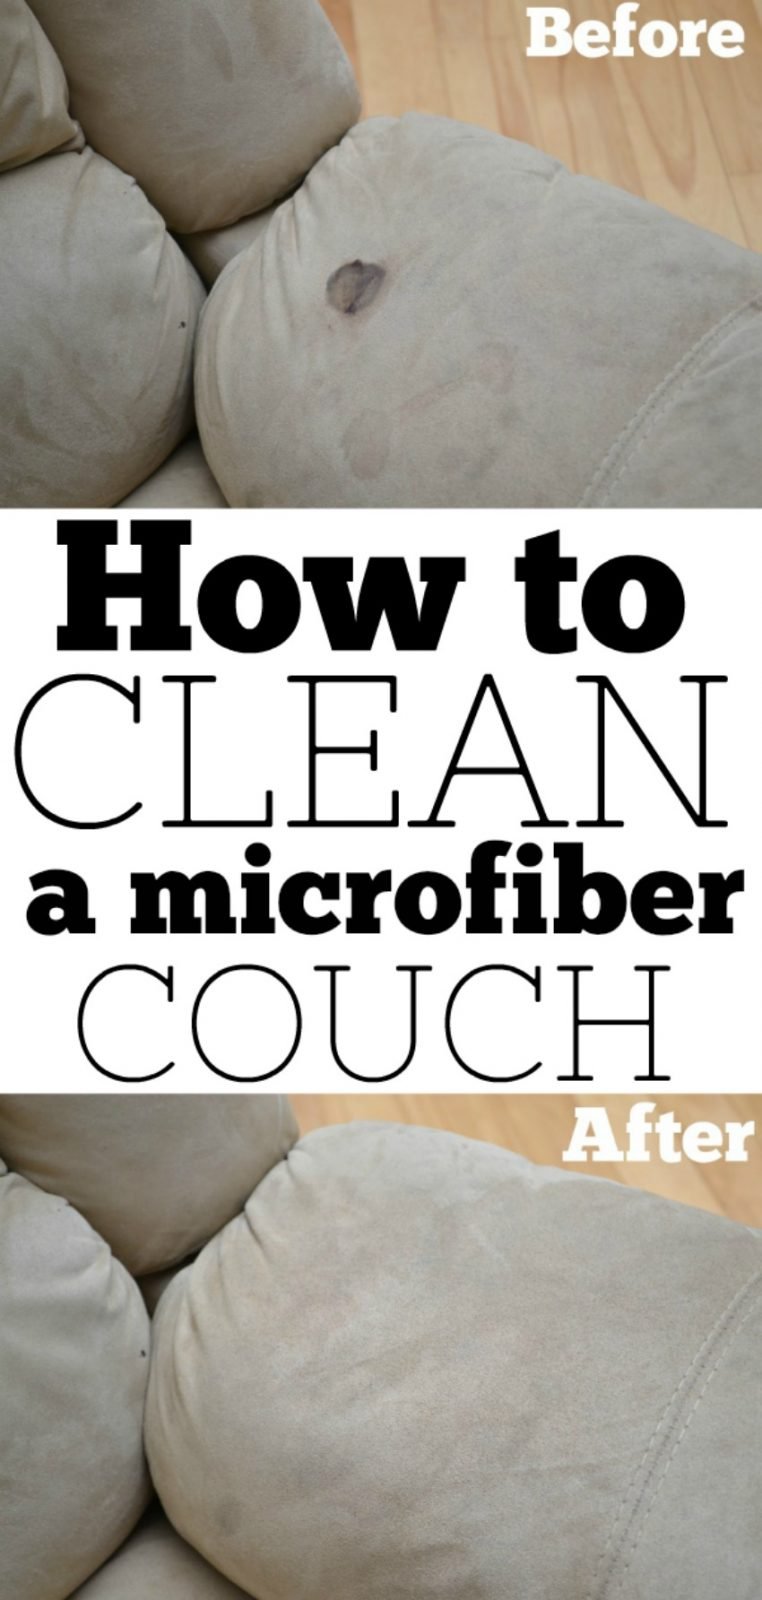 How to Clean a Microfiber Couch-2